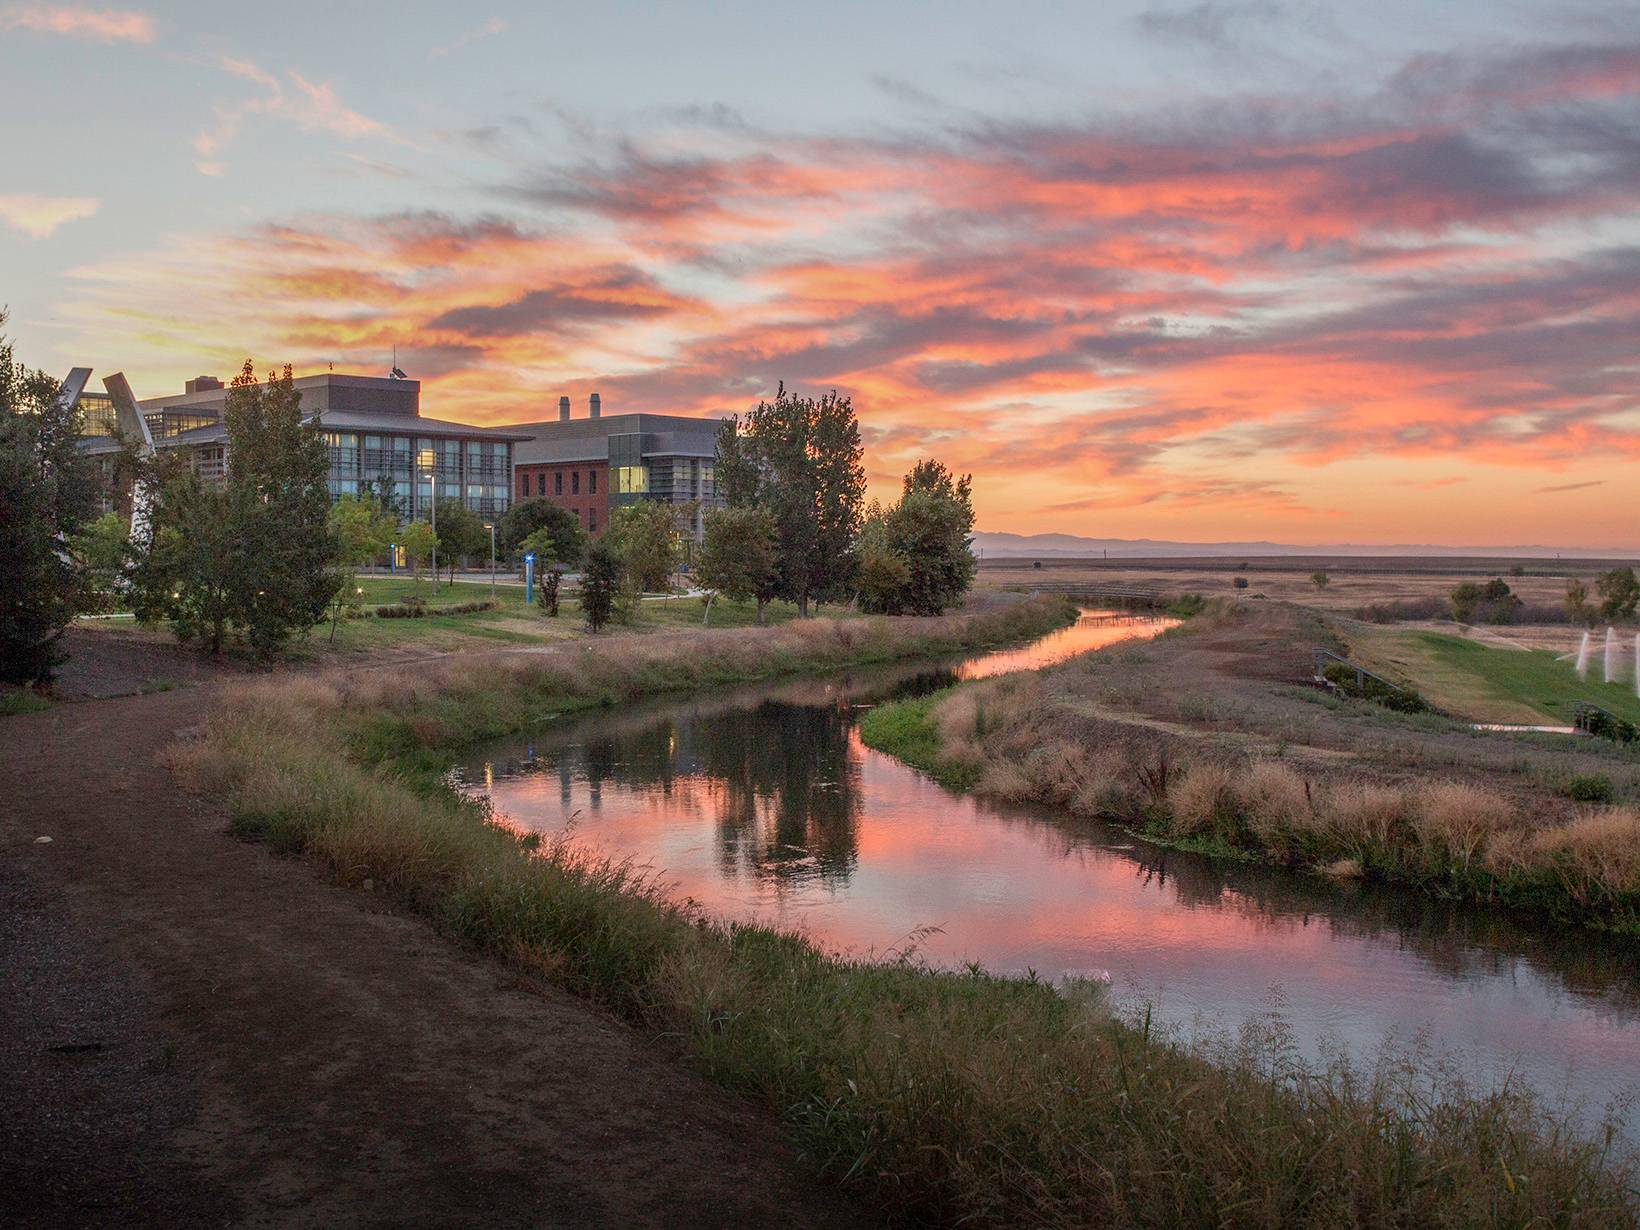 This image shows the sunrise over a canal at UC Merced